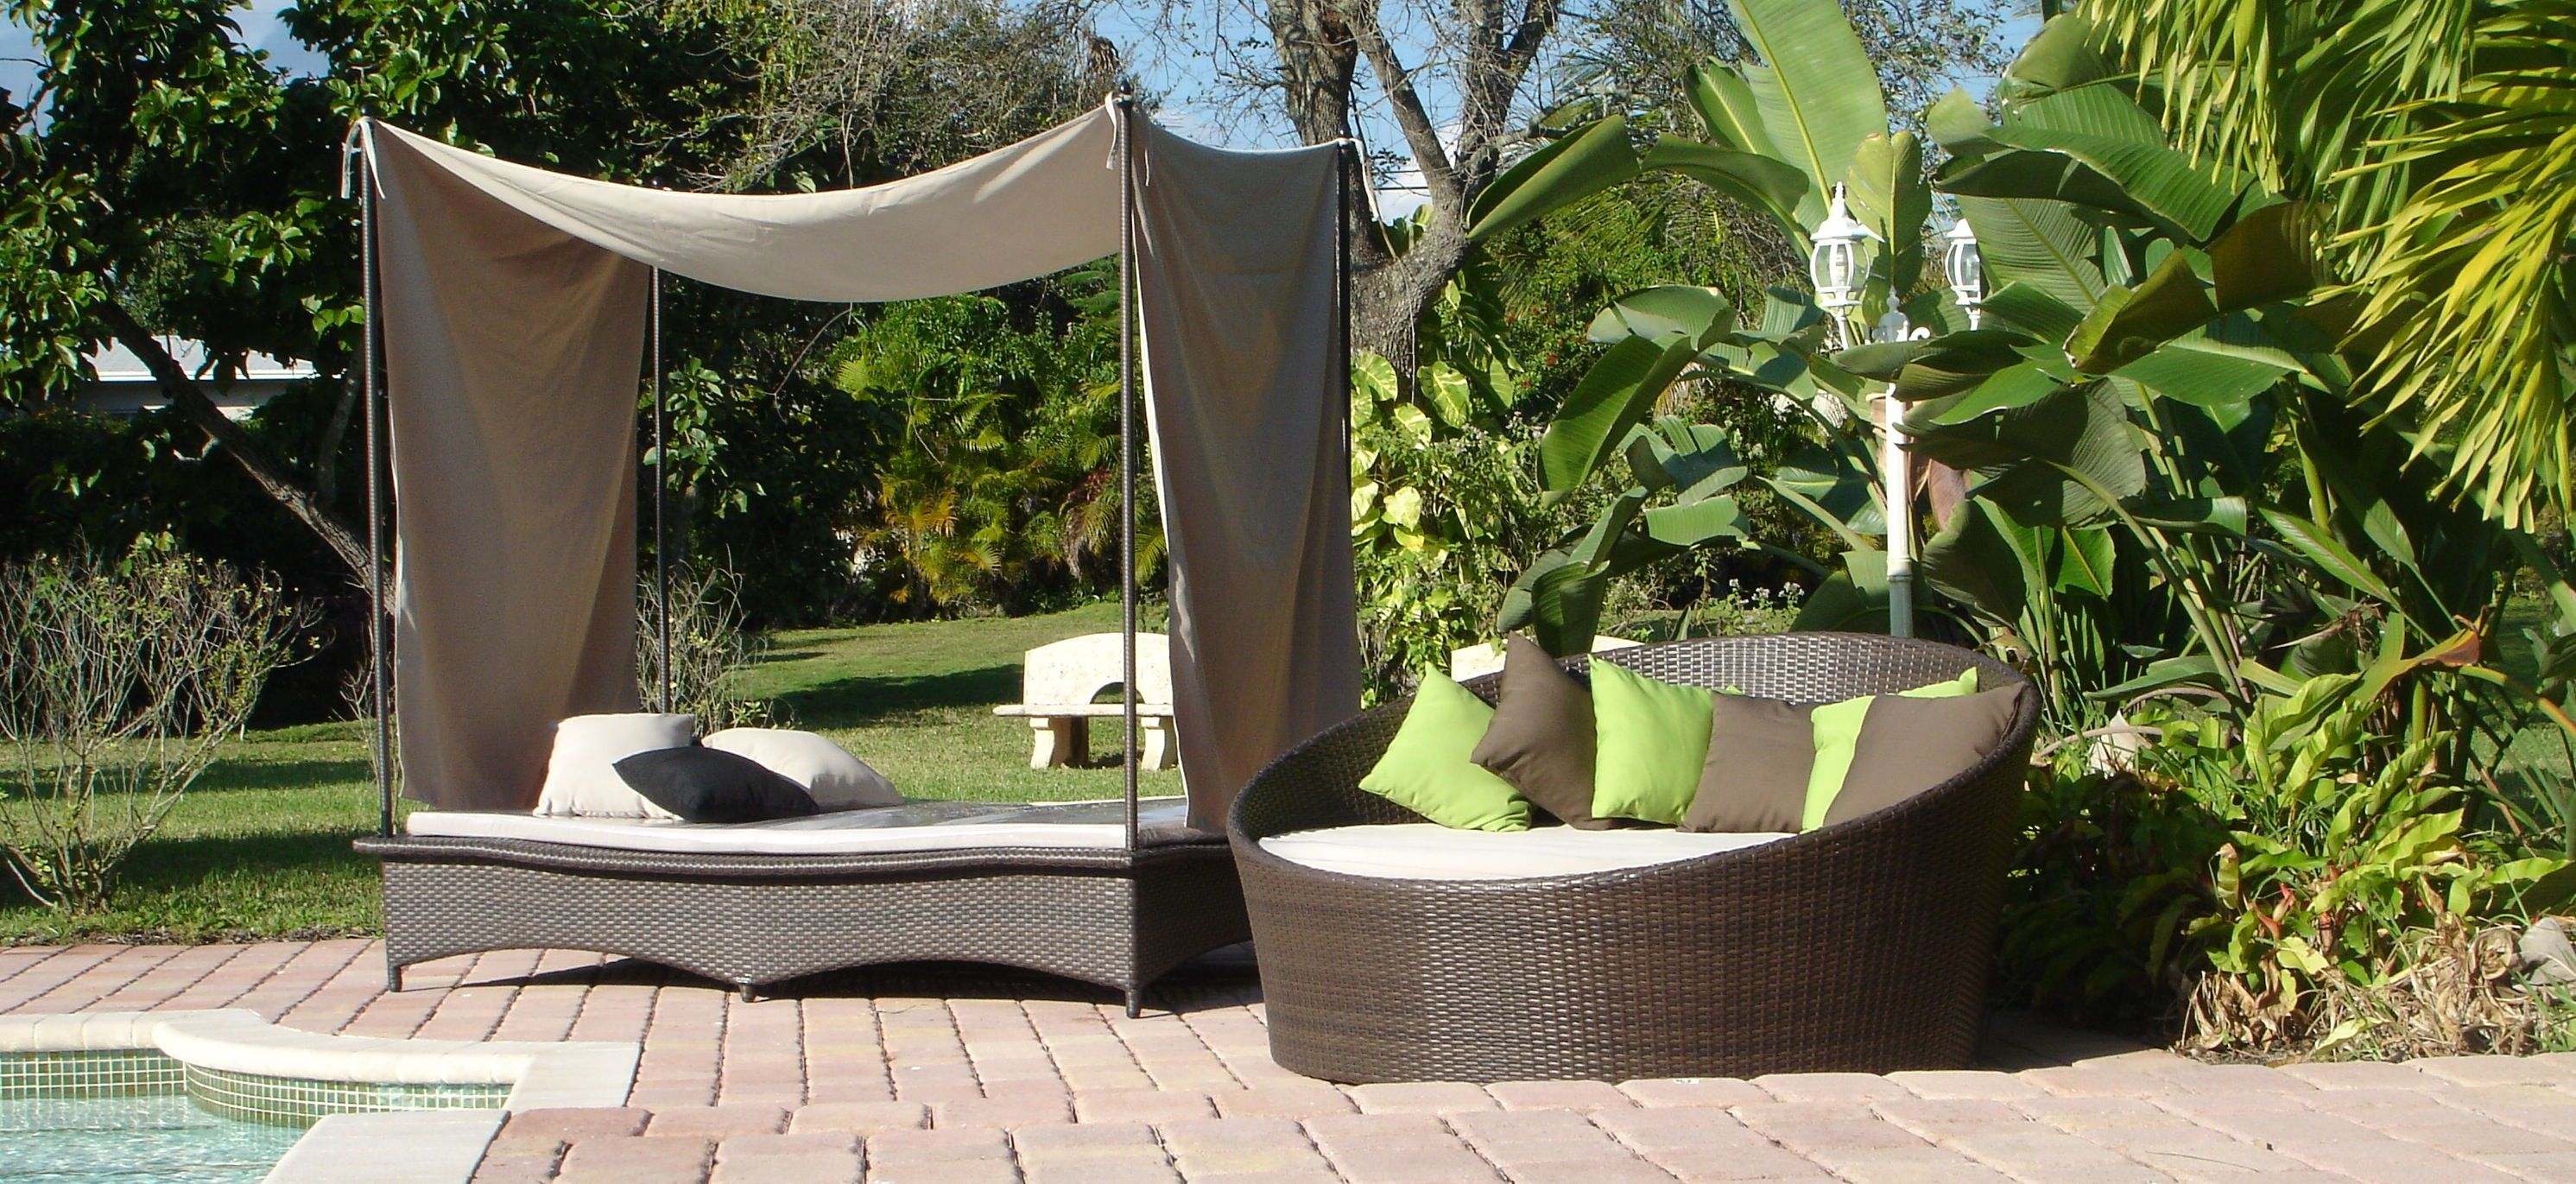 Captivating Synthetic Lawns Of Florida Now Offers All Weather Pool Deck And Patio  Furniture That Will Stand Up To The Test Of Florida Extreme Temperatures  And Weather.